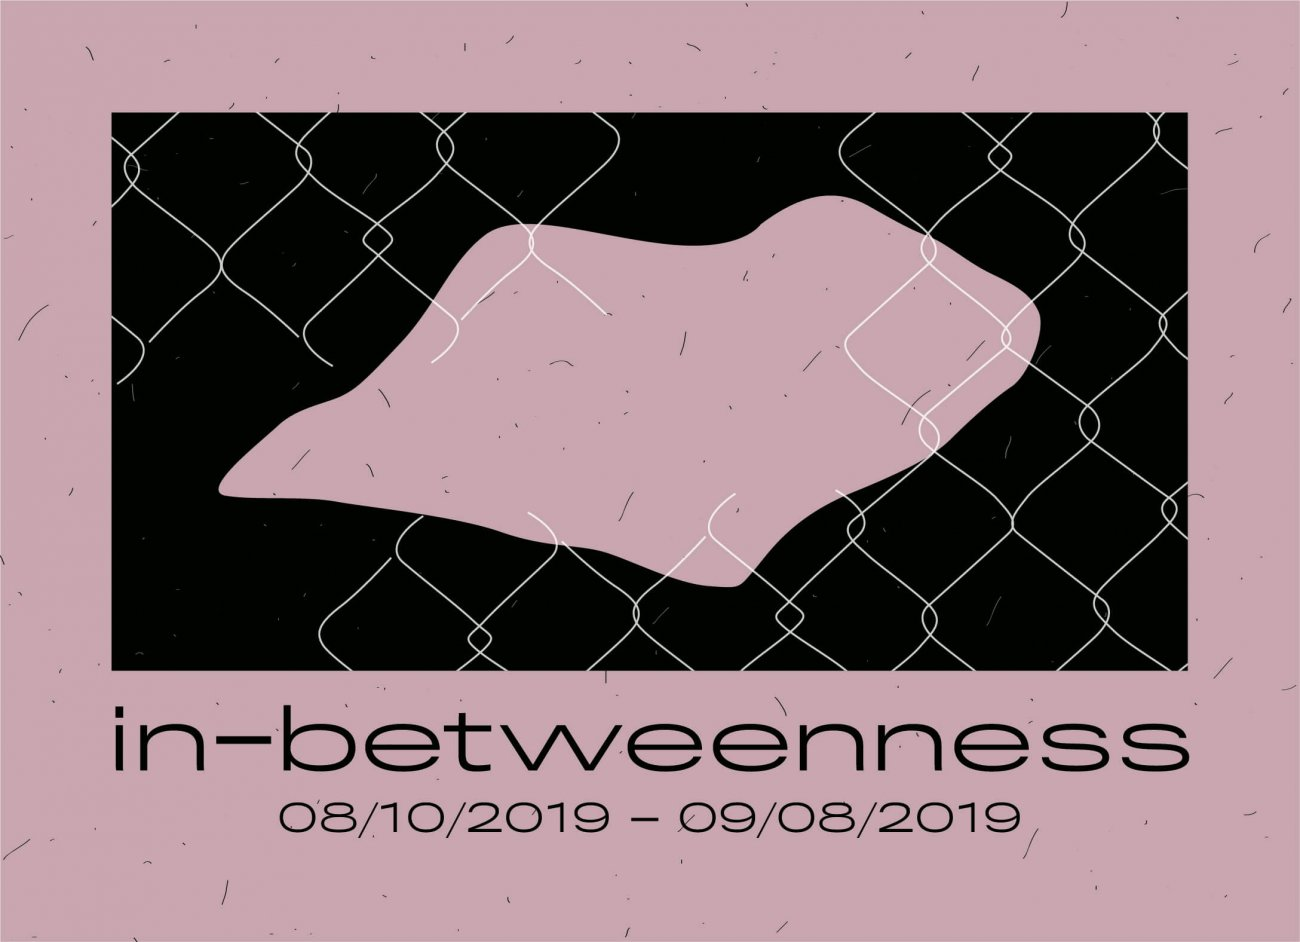 "Pink and black graphic image for show ""in-betweenness"" at LVL3 depicting an abstract shape amidst chainlink fencing."